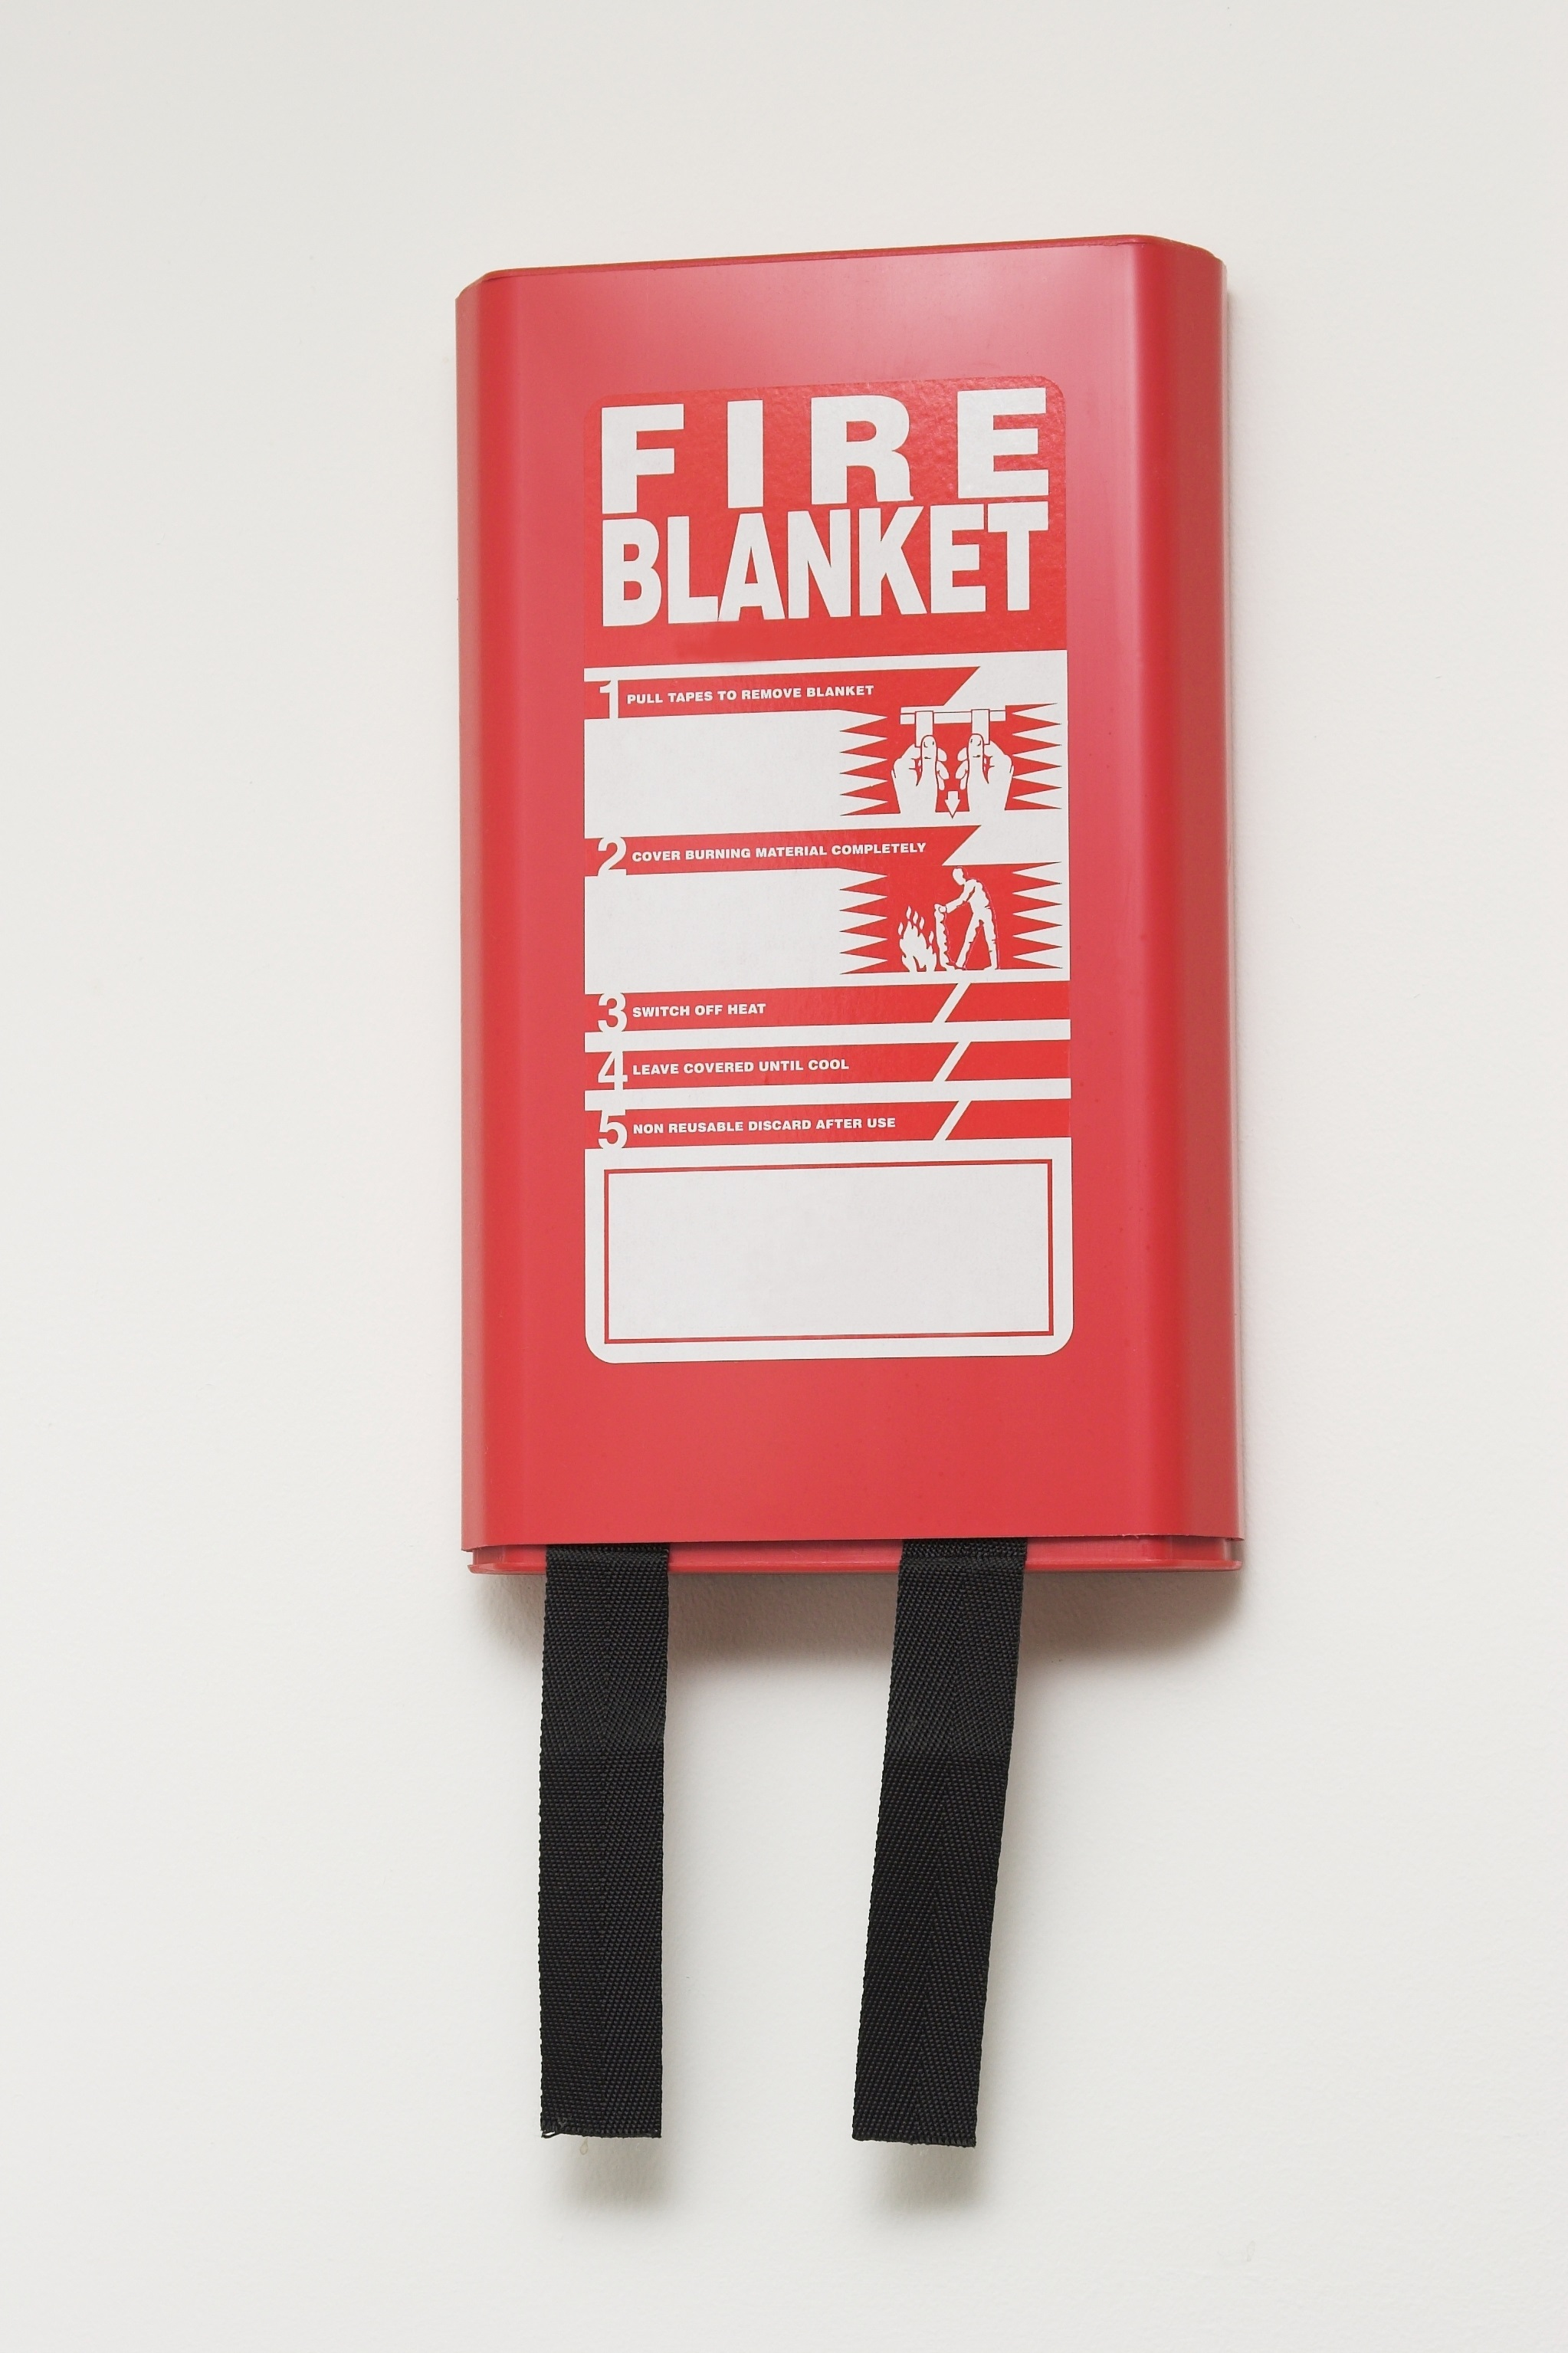 Fire blankets to protect your family